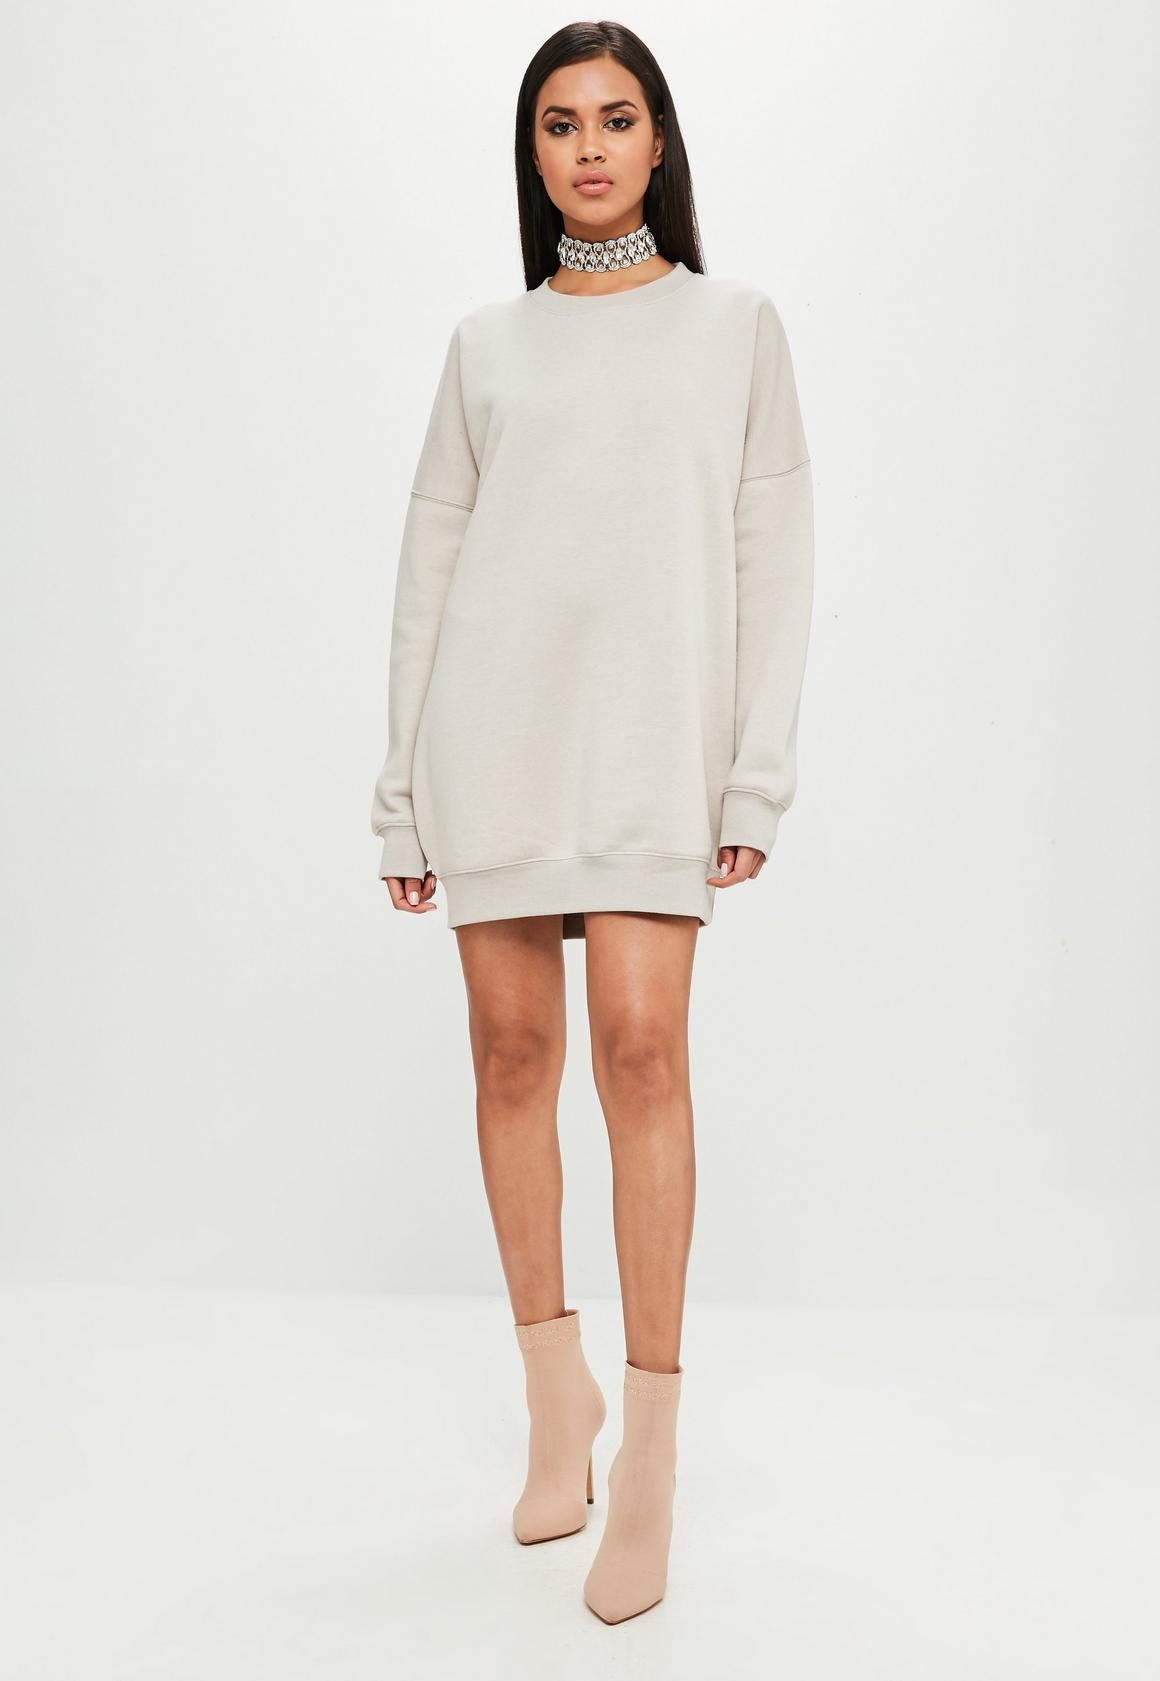 fe3e663df68 Missguided Carli Bybel x Missguided Nude Oversized Sweater Dress ...